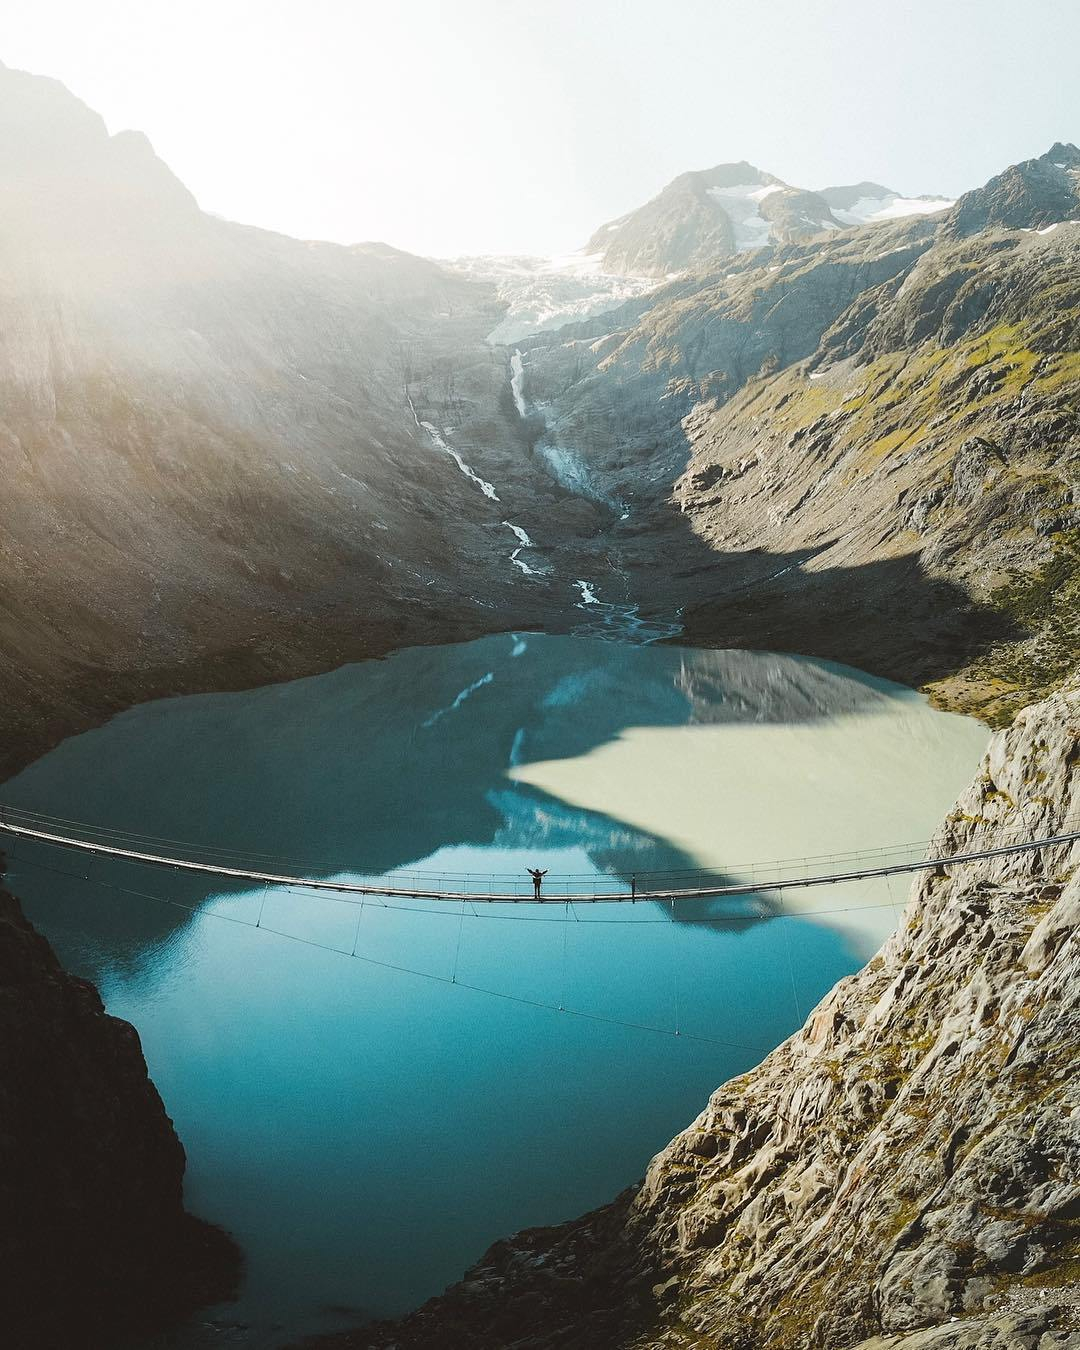 Triftbrucke Suspension bridge at sunrise with a man standing on the suspension bridge over the turquoise lake